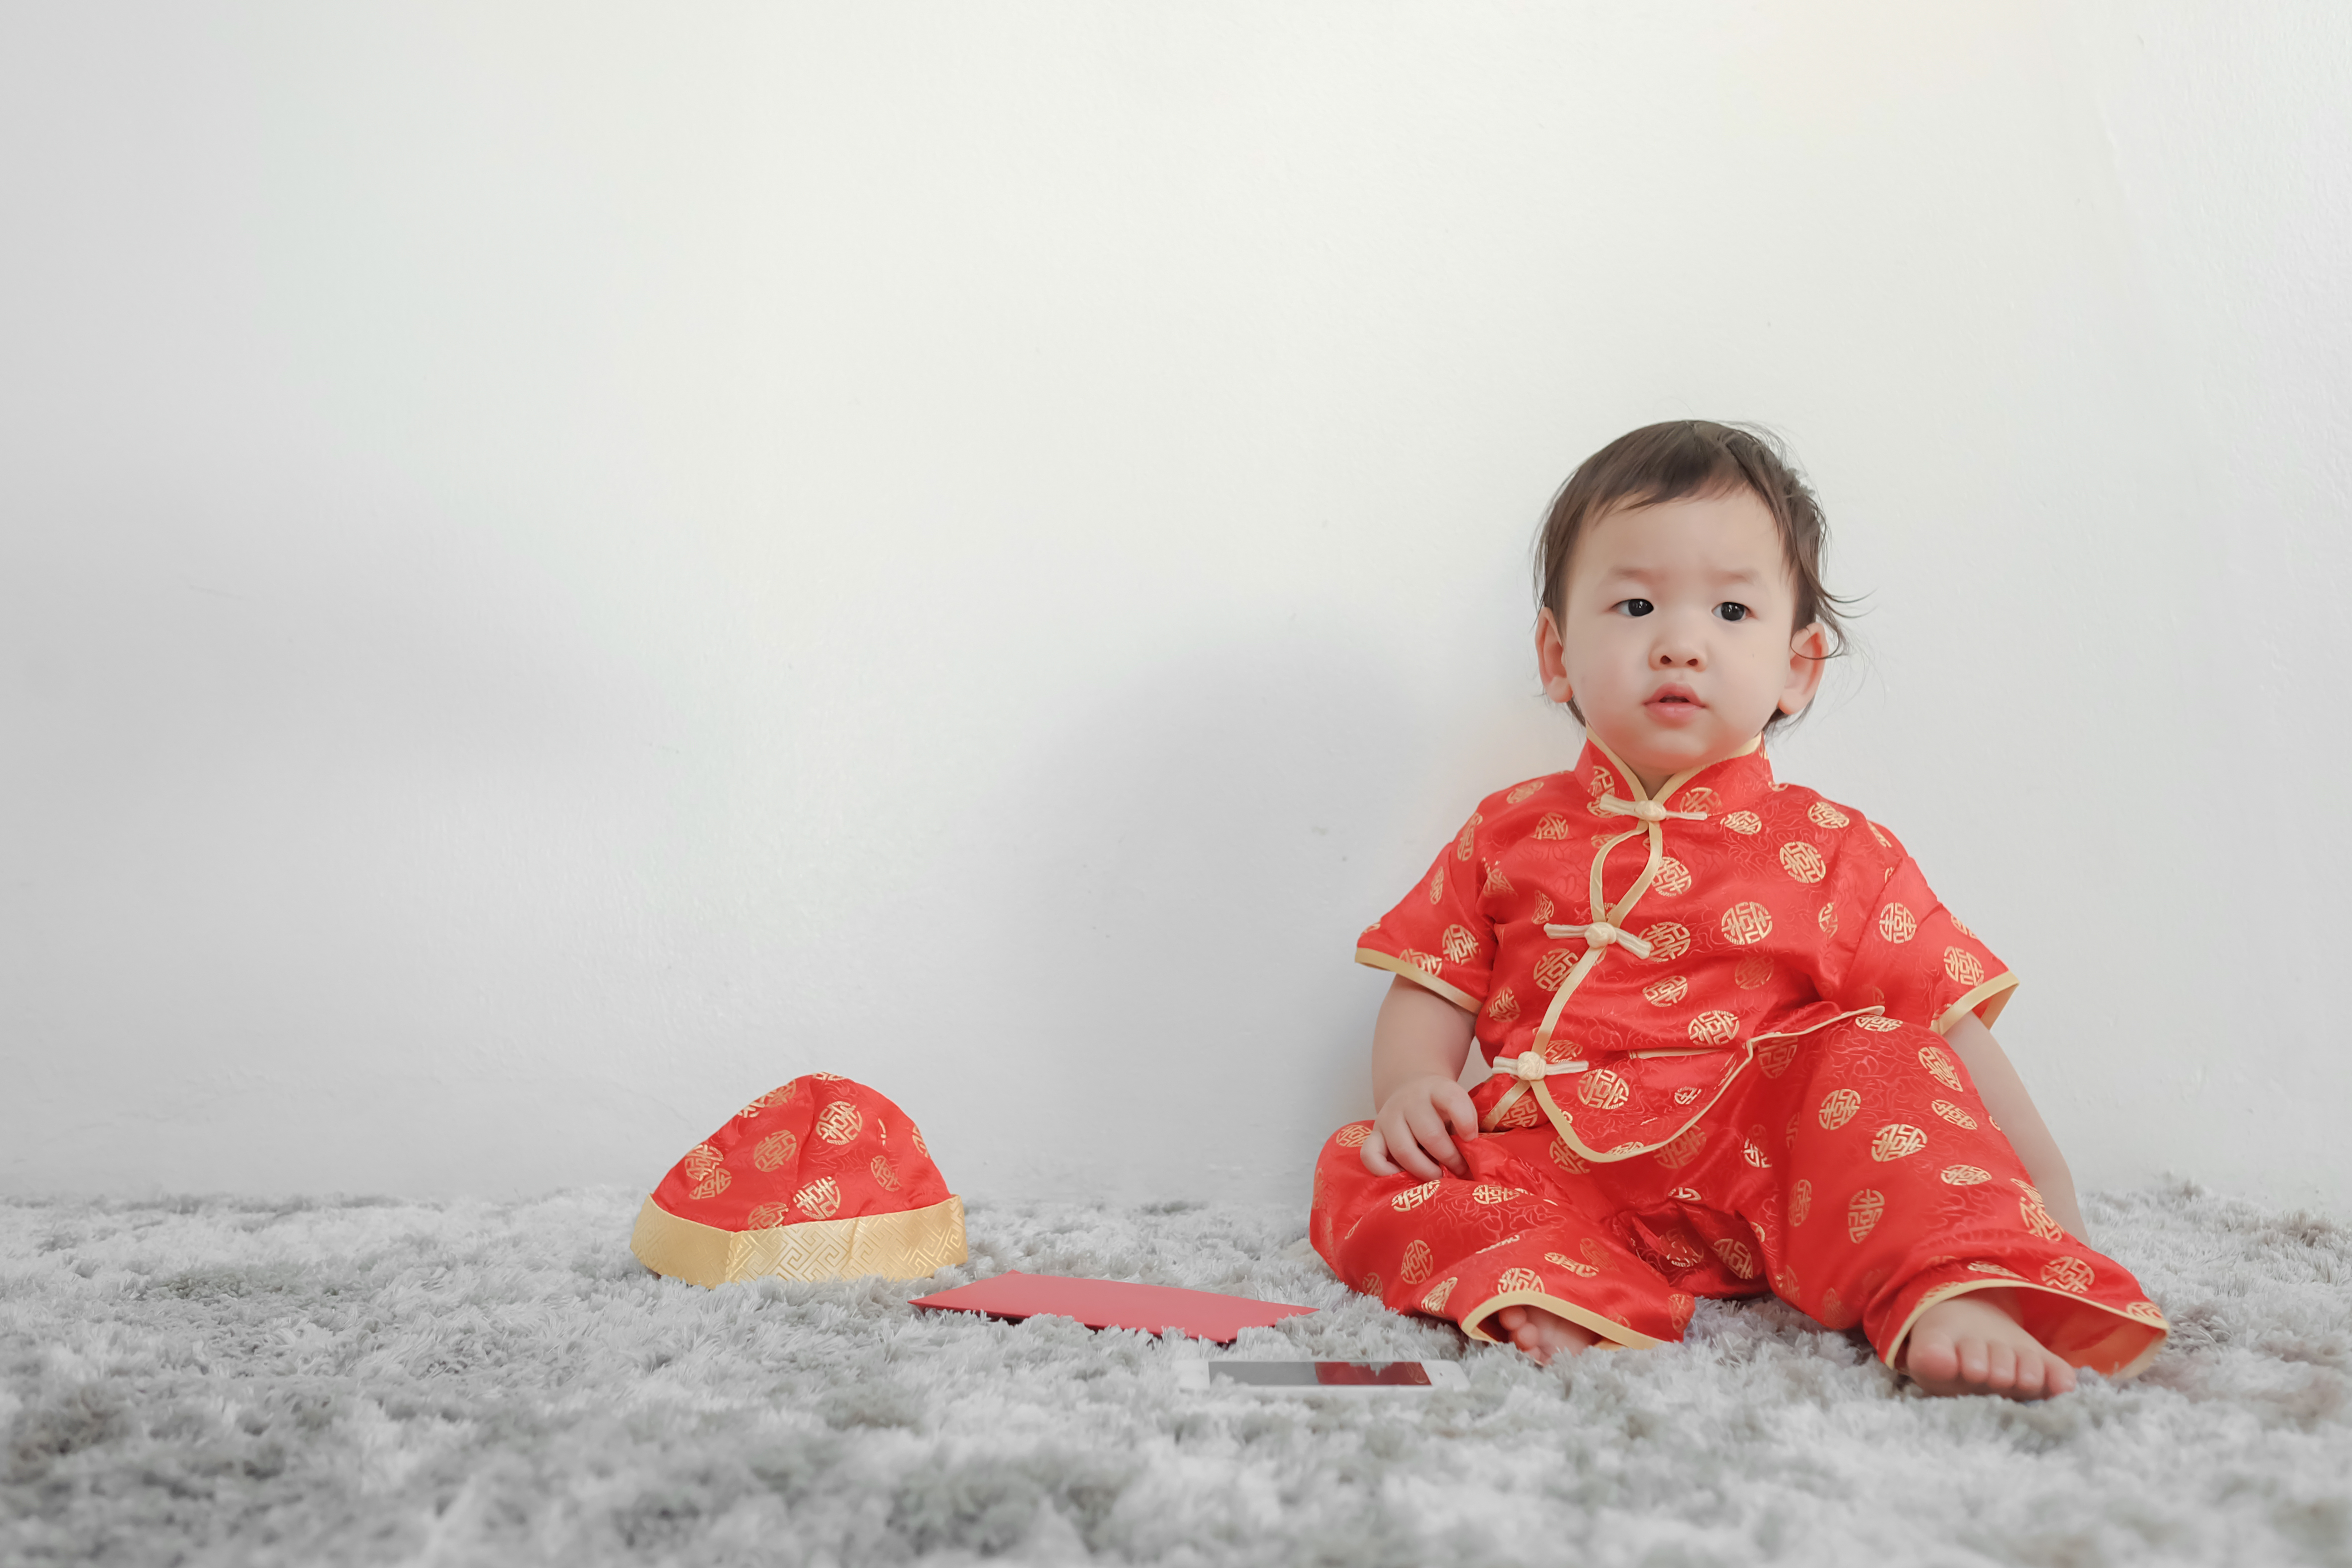 Chinese New Year Window to the Womb